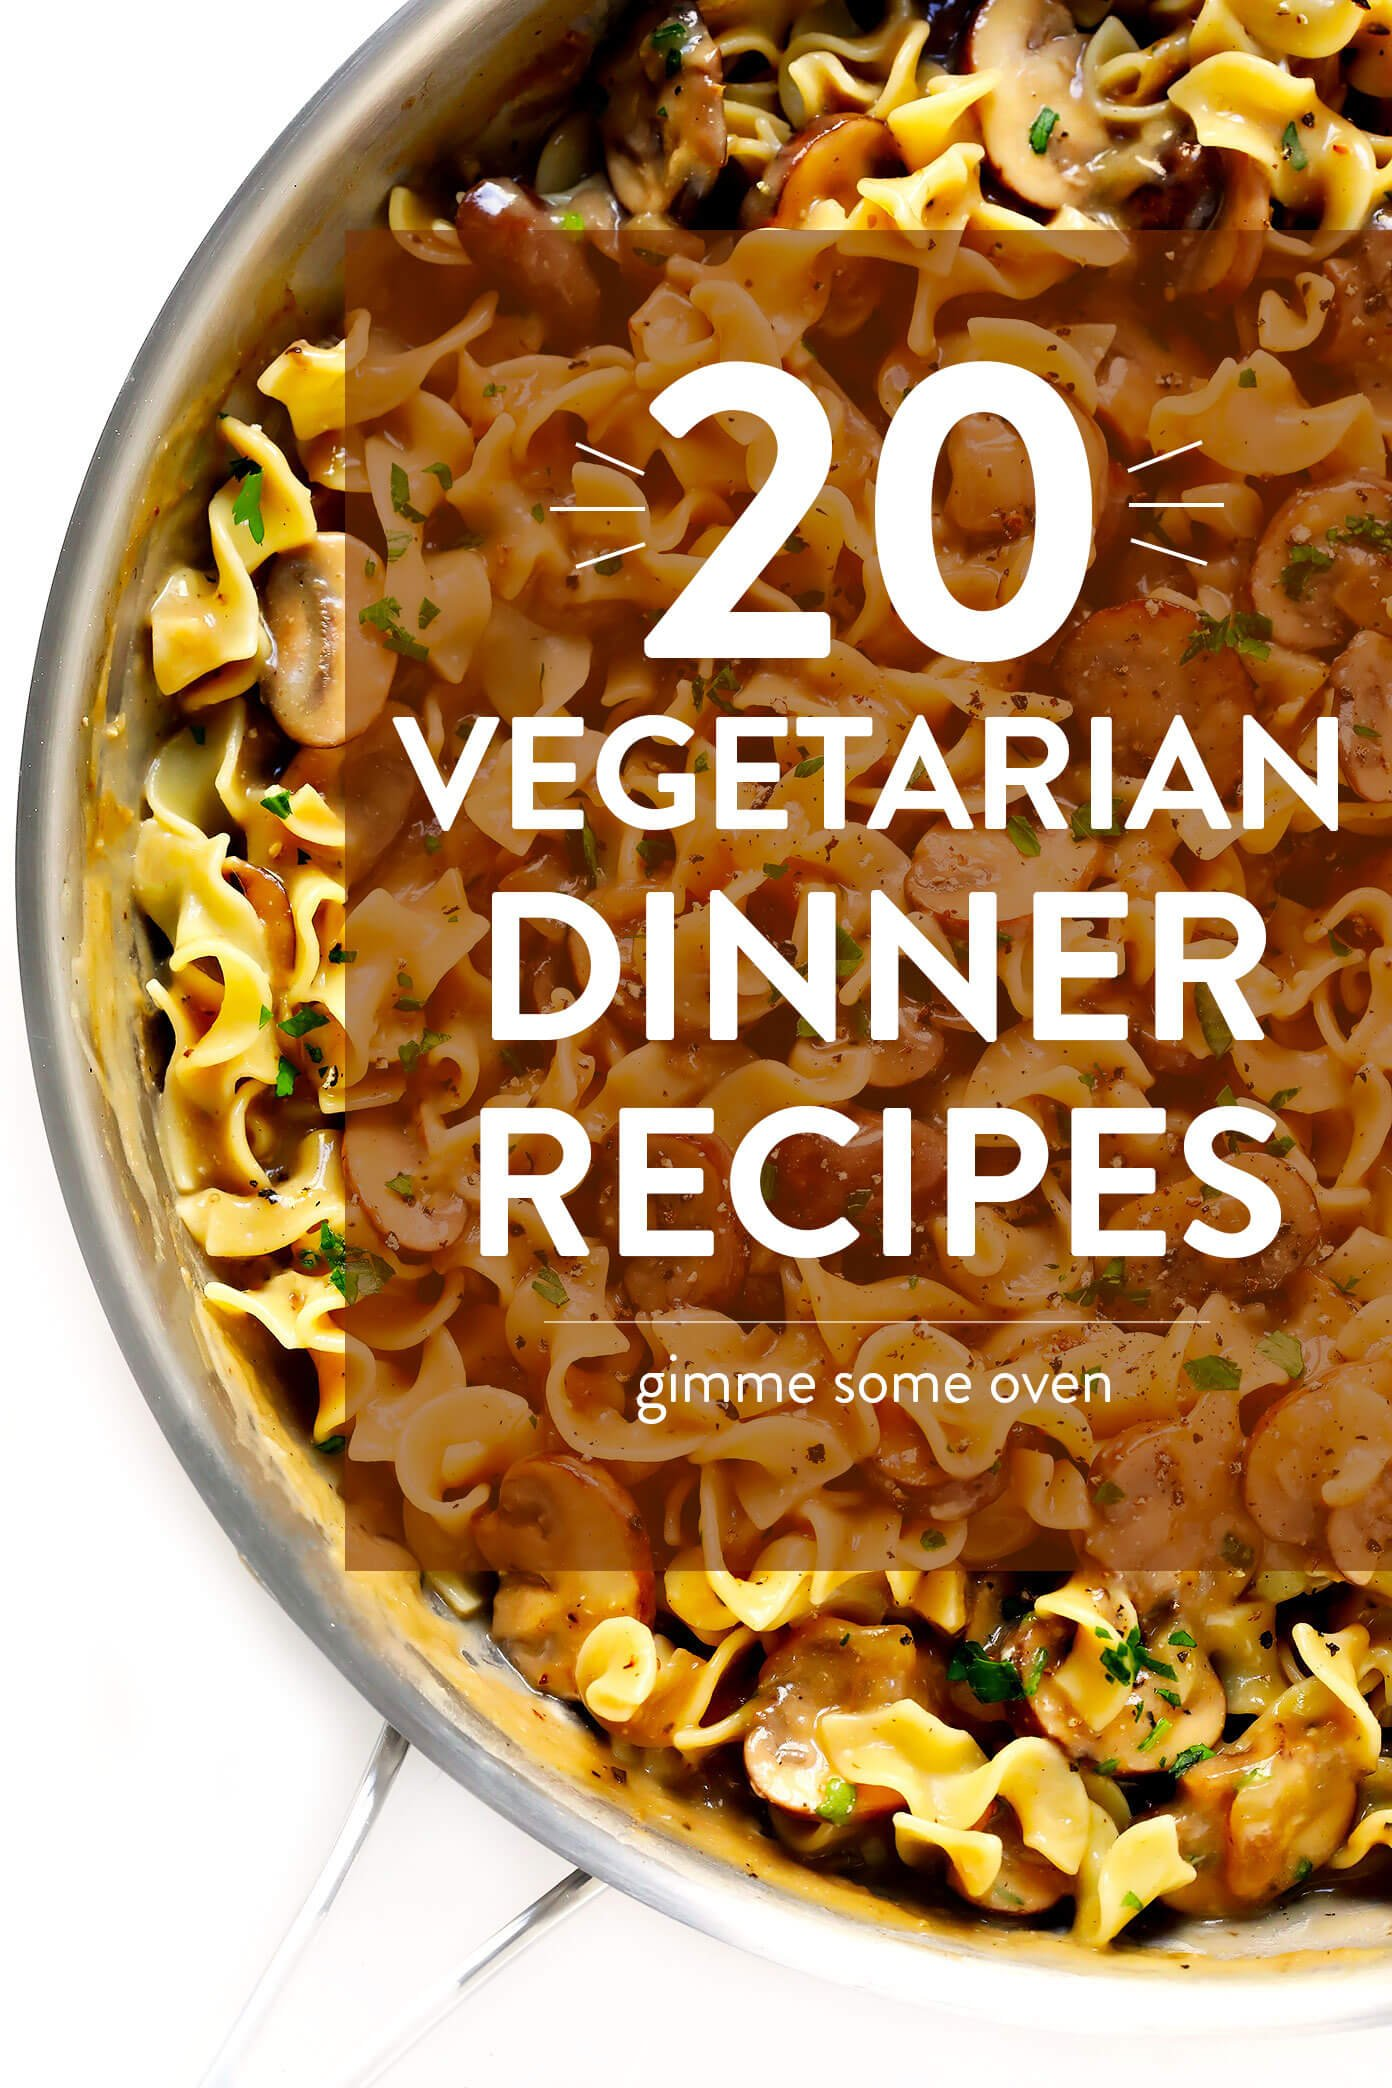 20 Vegetarian Dinner Recipes | A collection of delicious vegetarian dinner ideas perfect for busy weeknights and meal planning